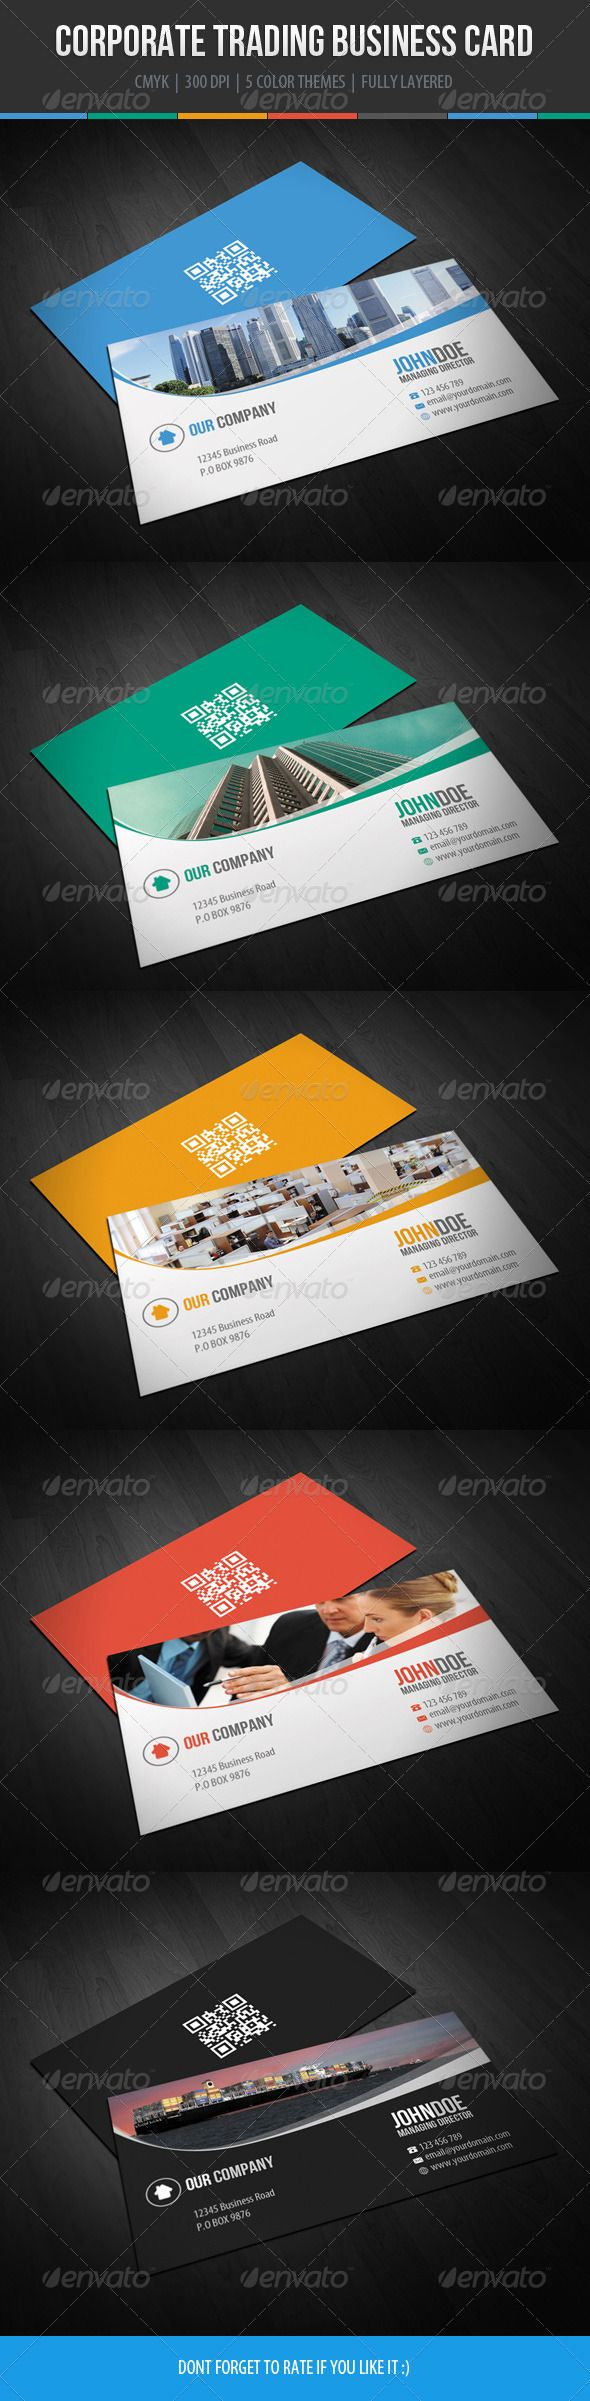 87 best print templates images on pinterest print templates font corporate trading business card design reheart Gallery